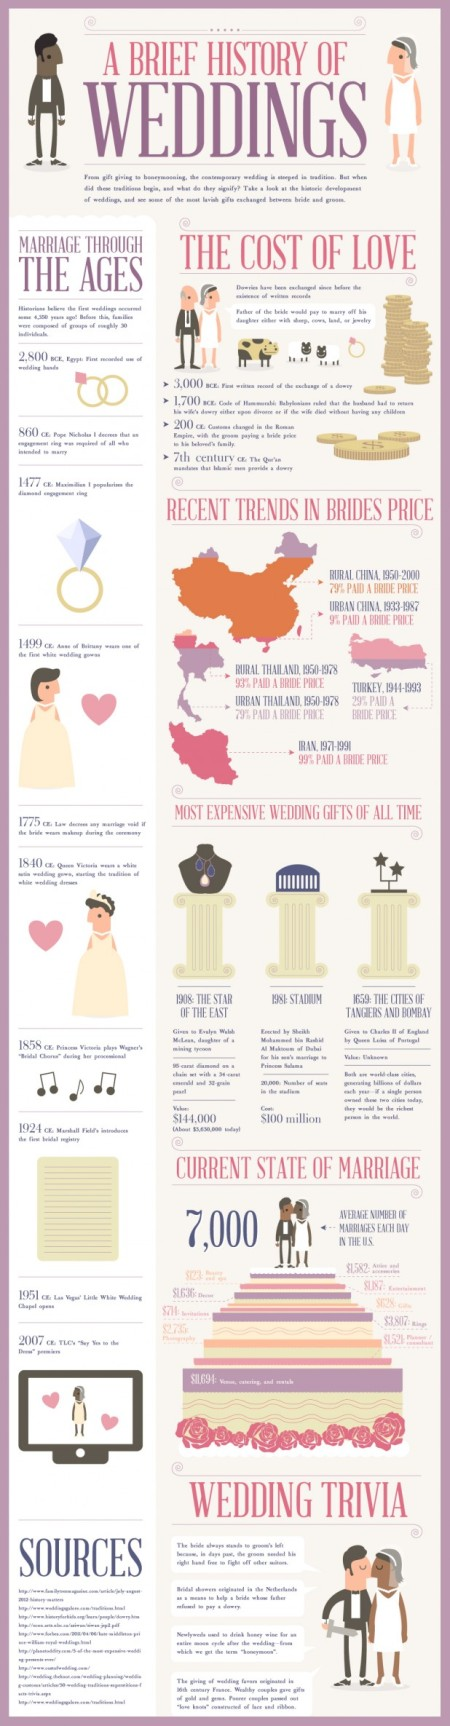 a-brief-history-of-weddings_50be7ff4466de_w618